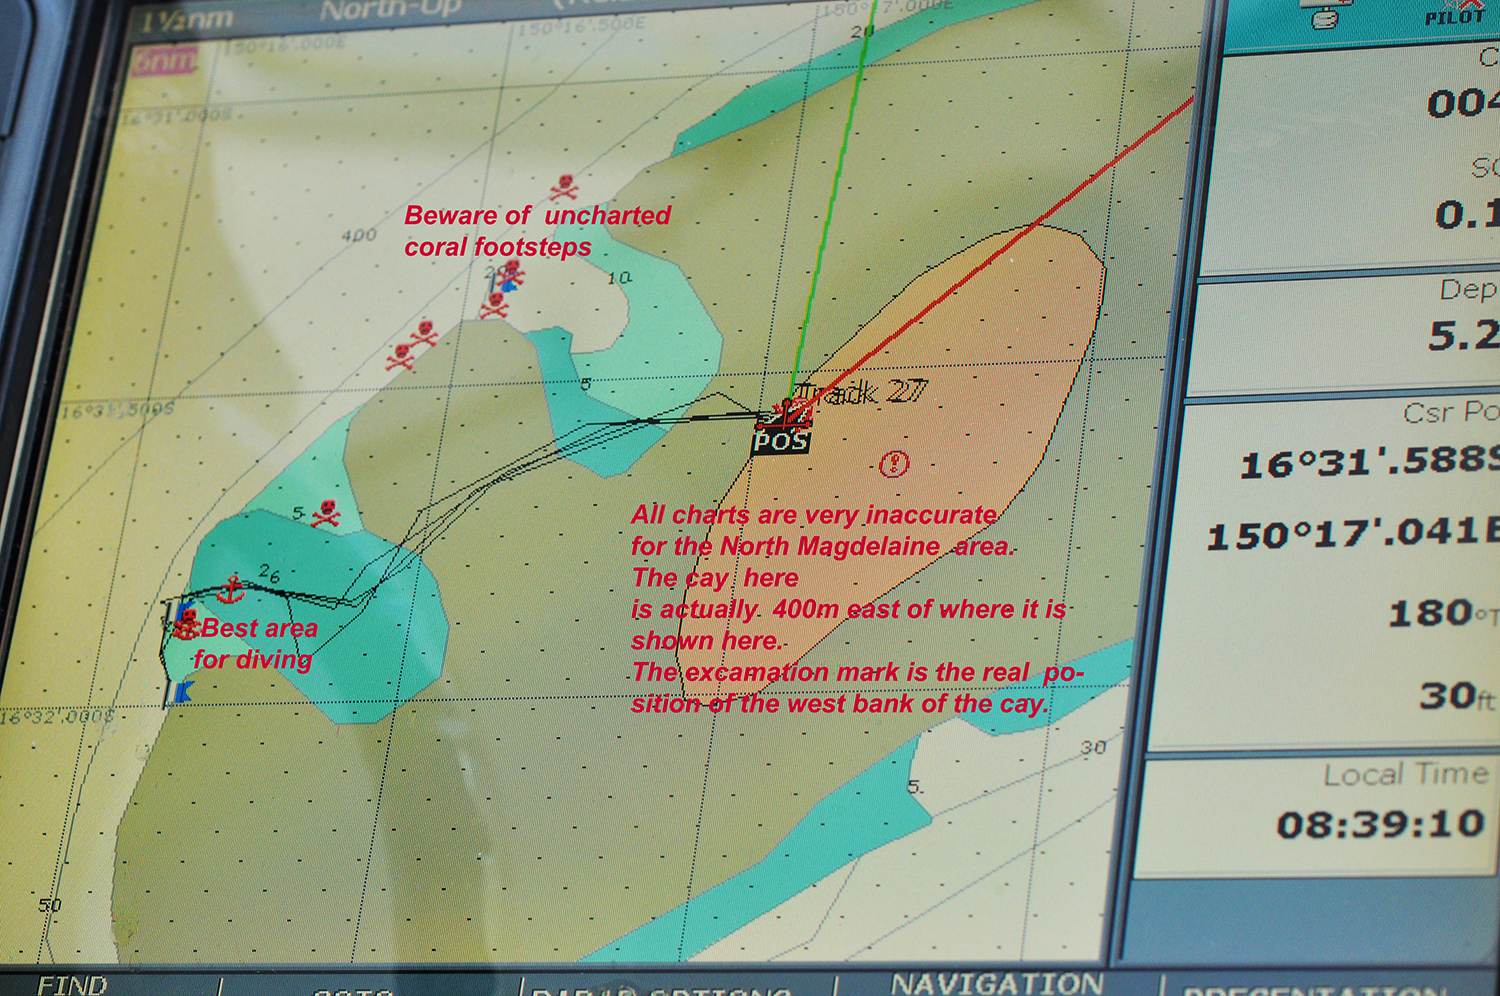 Beware -- Charts are very inaccurate for North Magdeaine cay and Reefs.